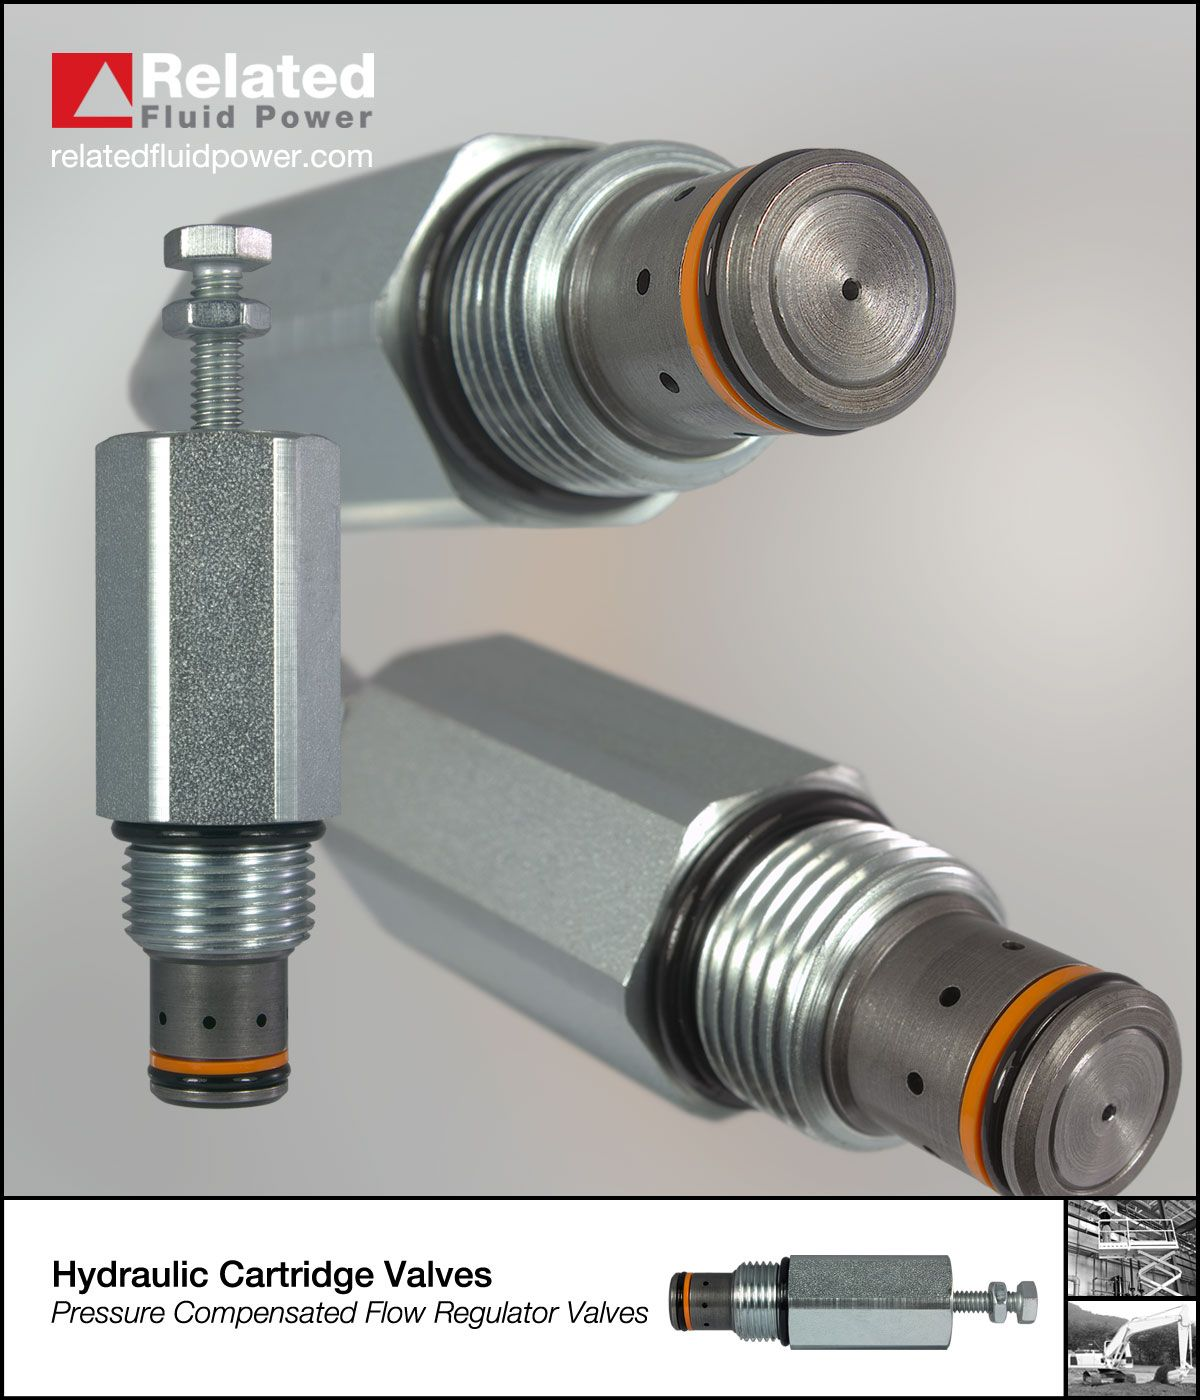 pressure compensated flow control valves are ideal for hydraulic applications that demand